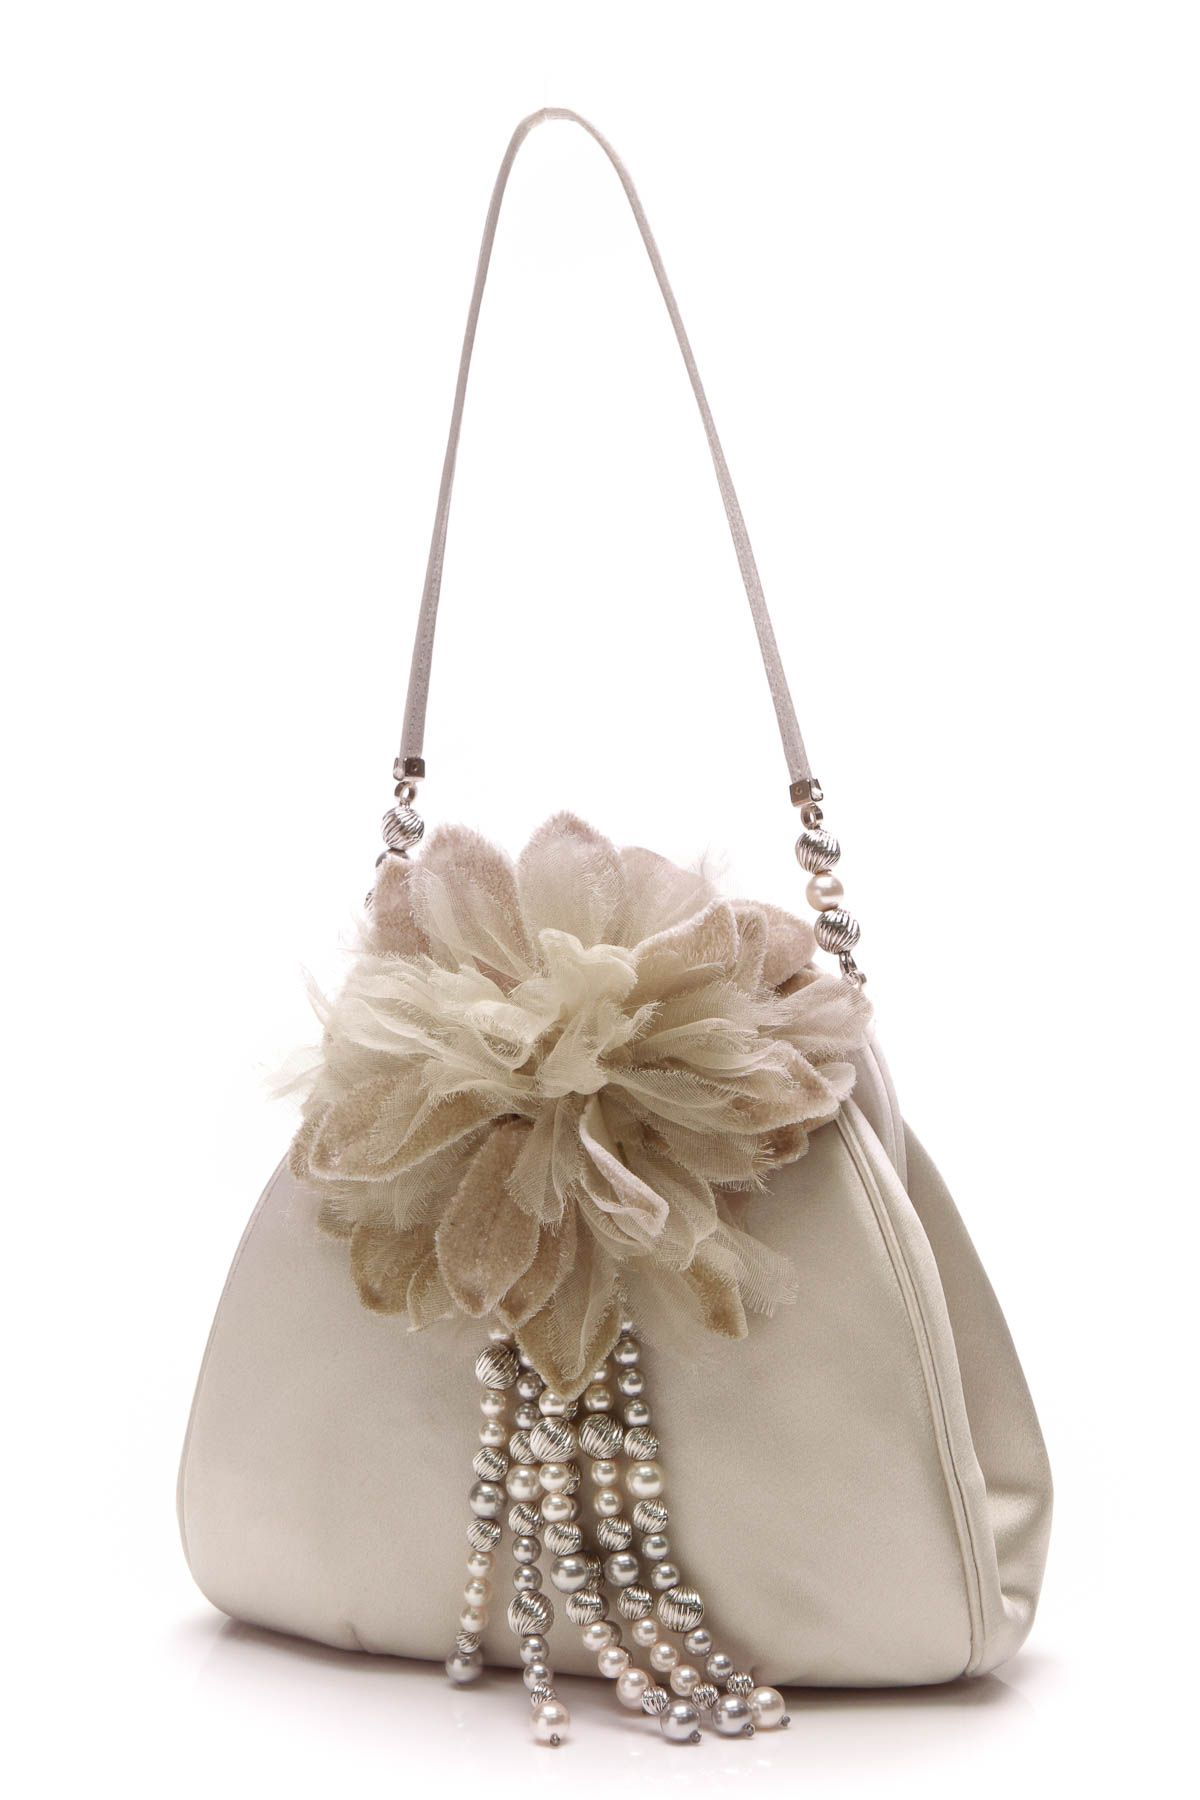 Judith Leiber Flower Beaded Evening Bag - Silver  0d09925741942